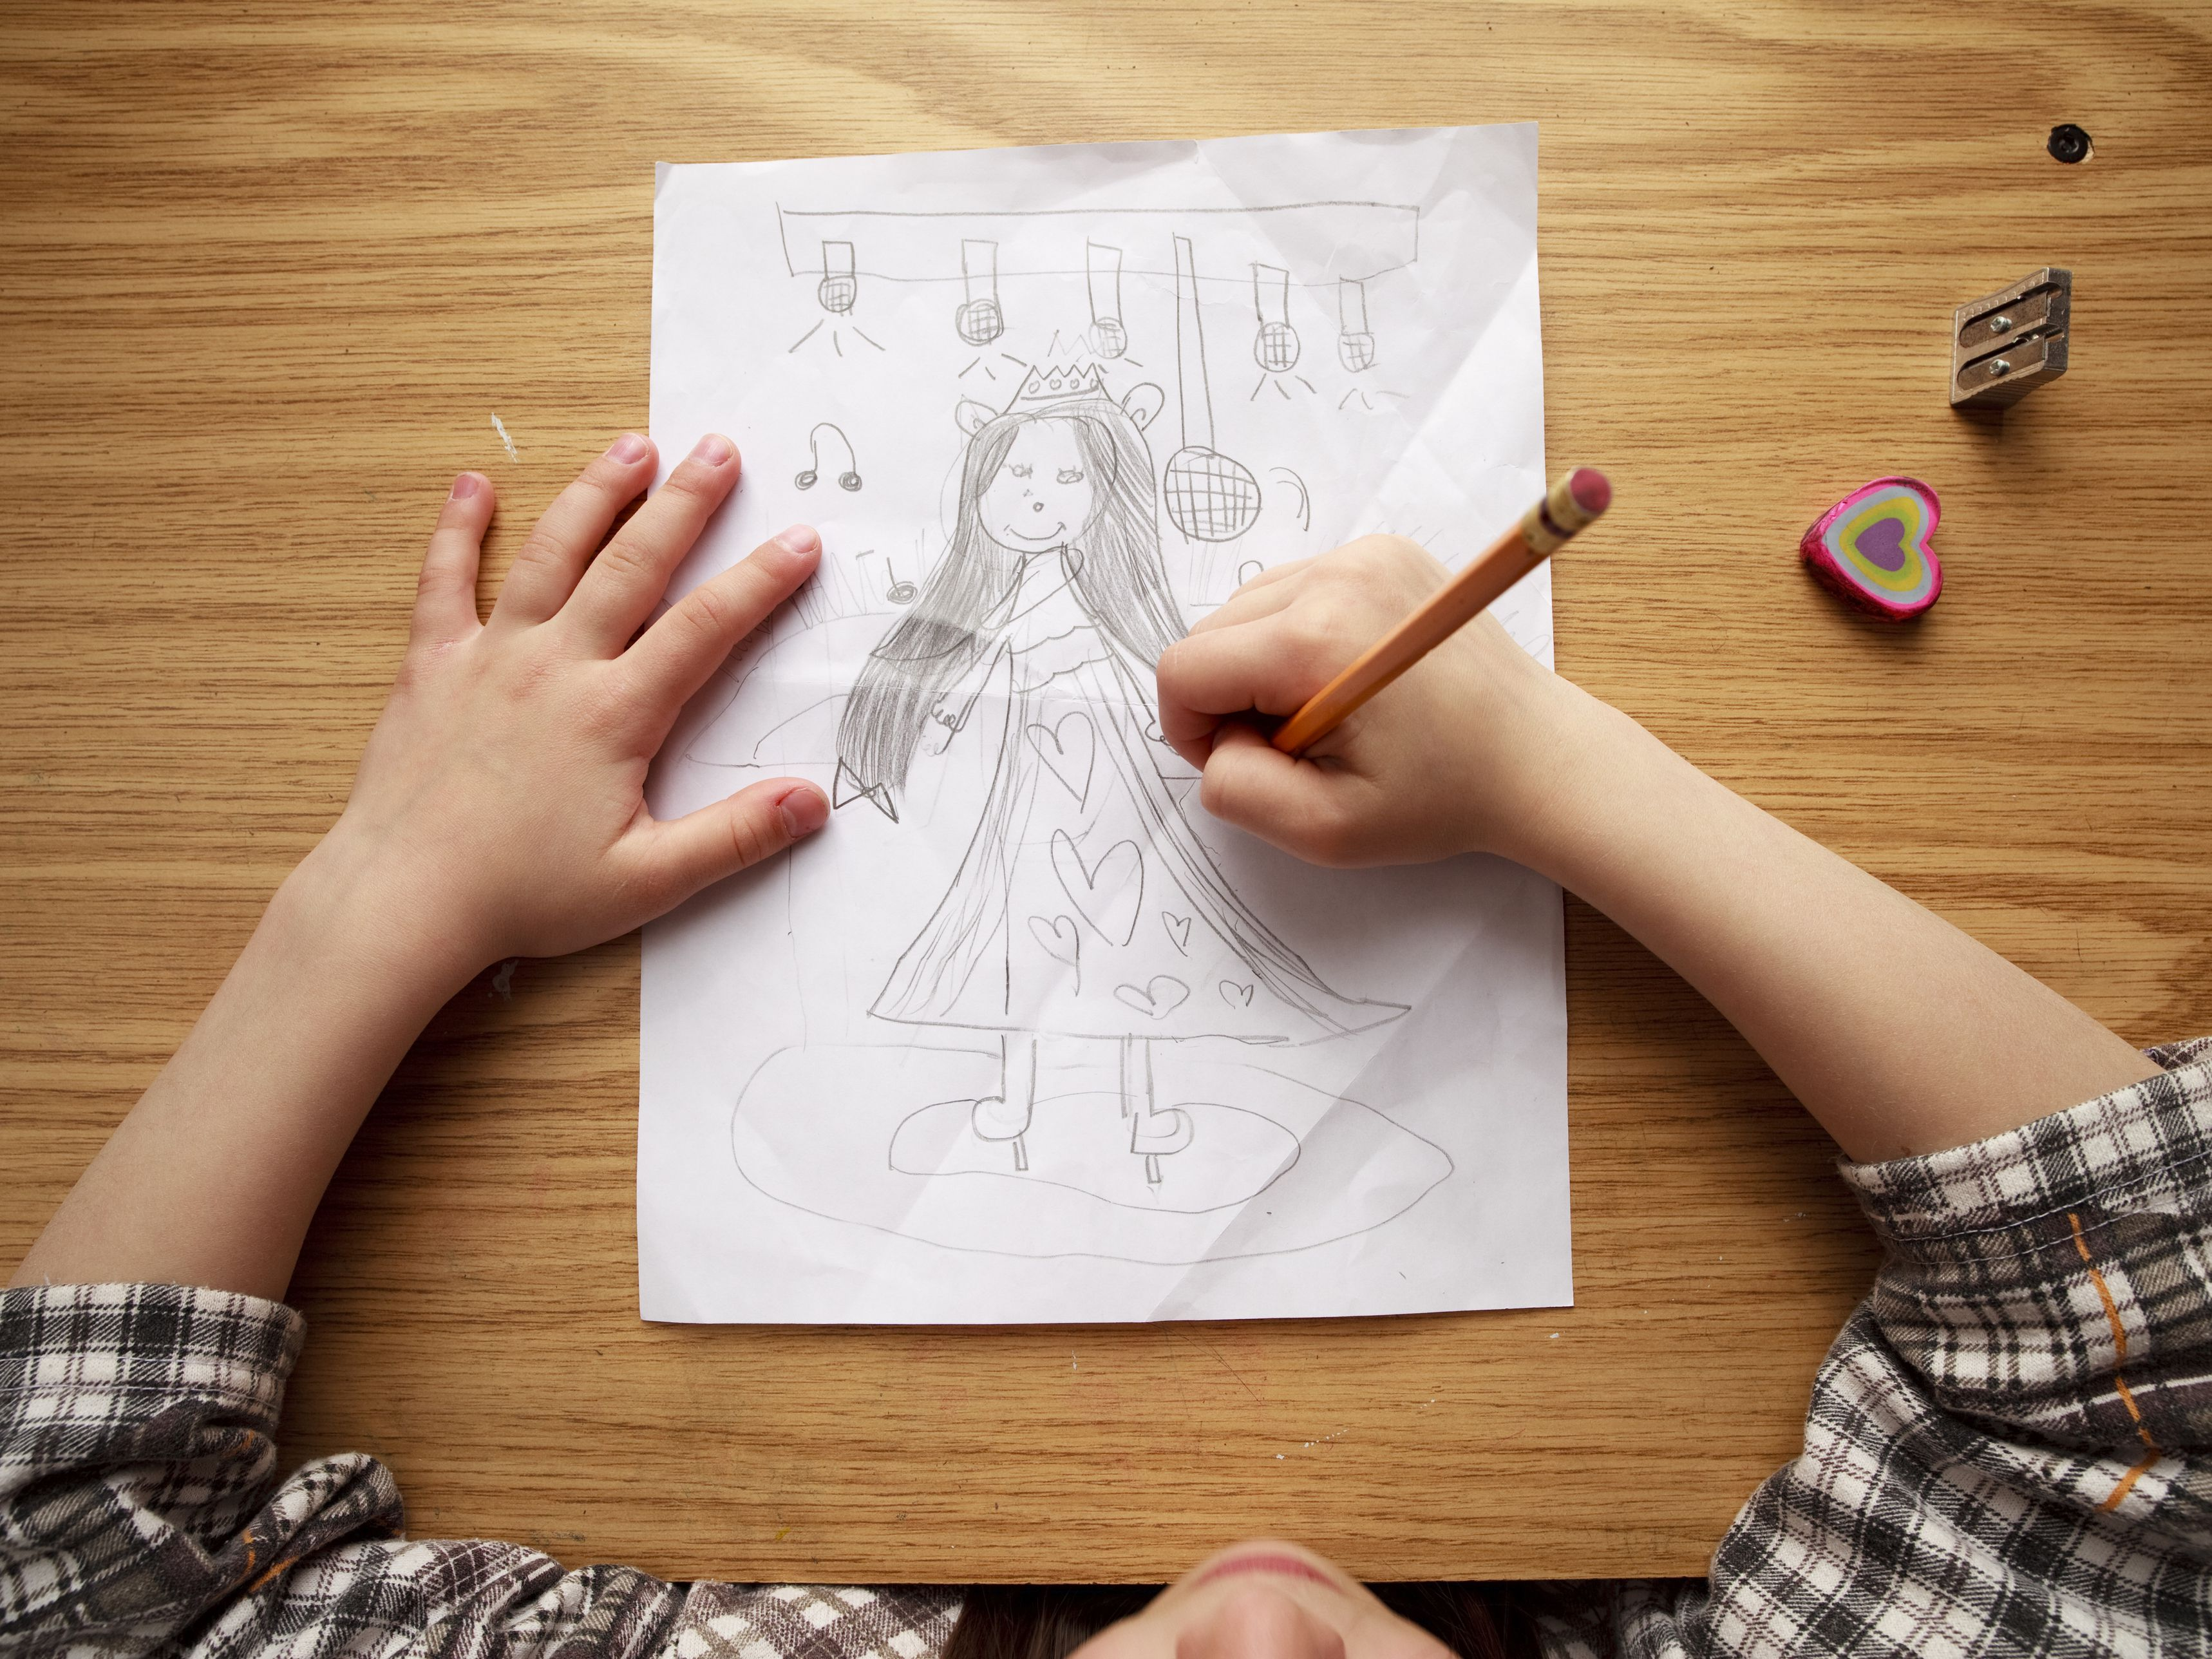 Tips for teaching kids how to draw